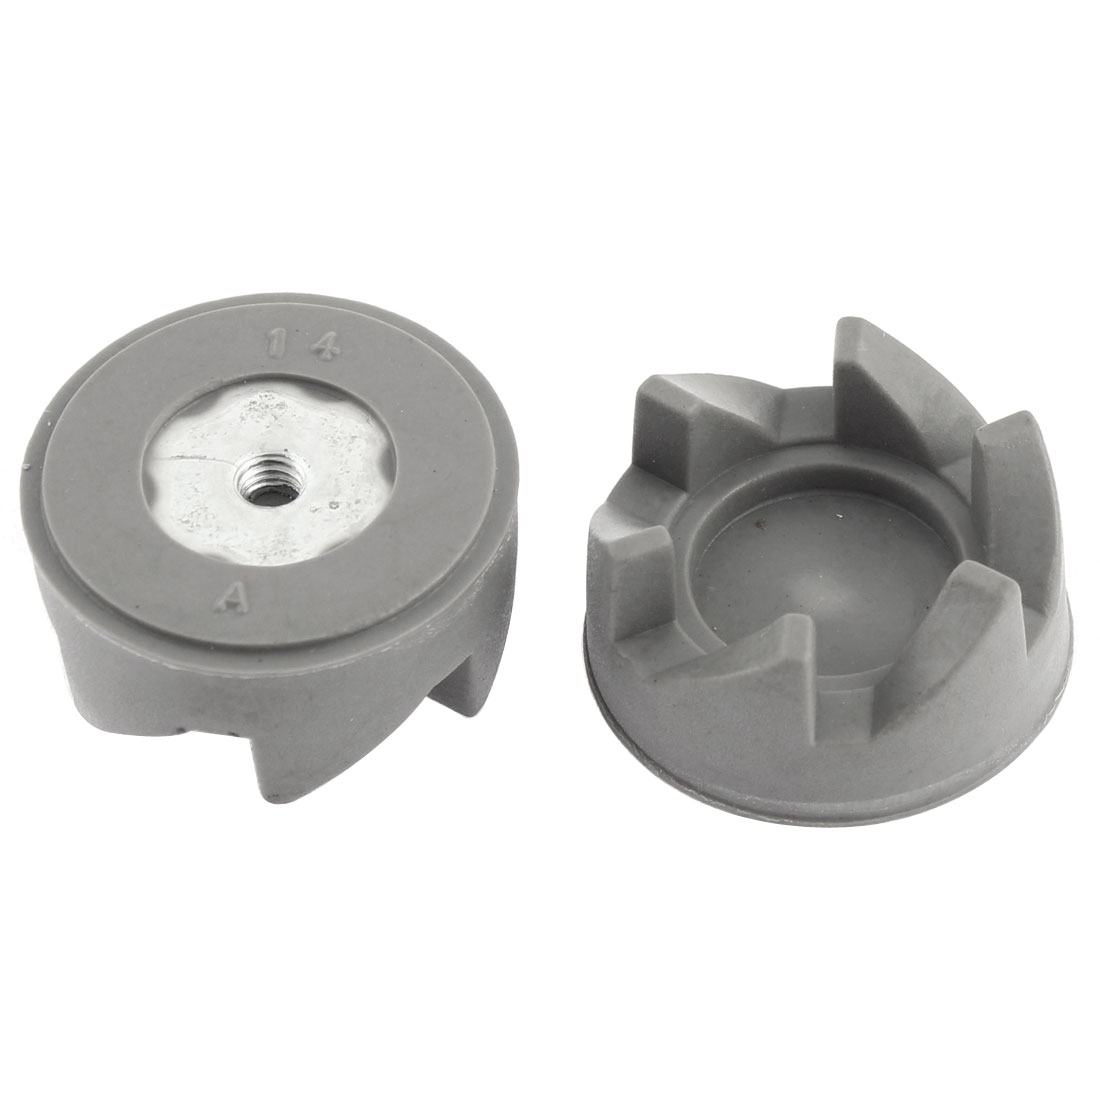 Household Kitchen Aid 6-Teeth Rubber Coupling Clutch Gear Gray 2pcs 34mm Dia for Food Blender